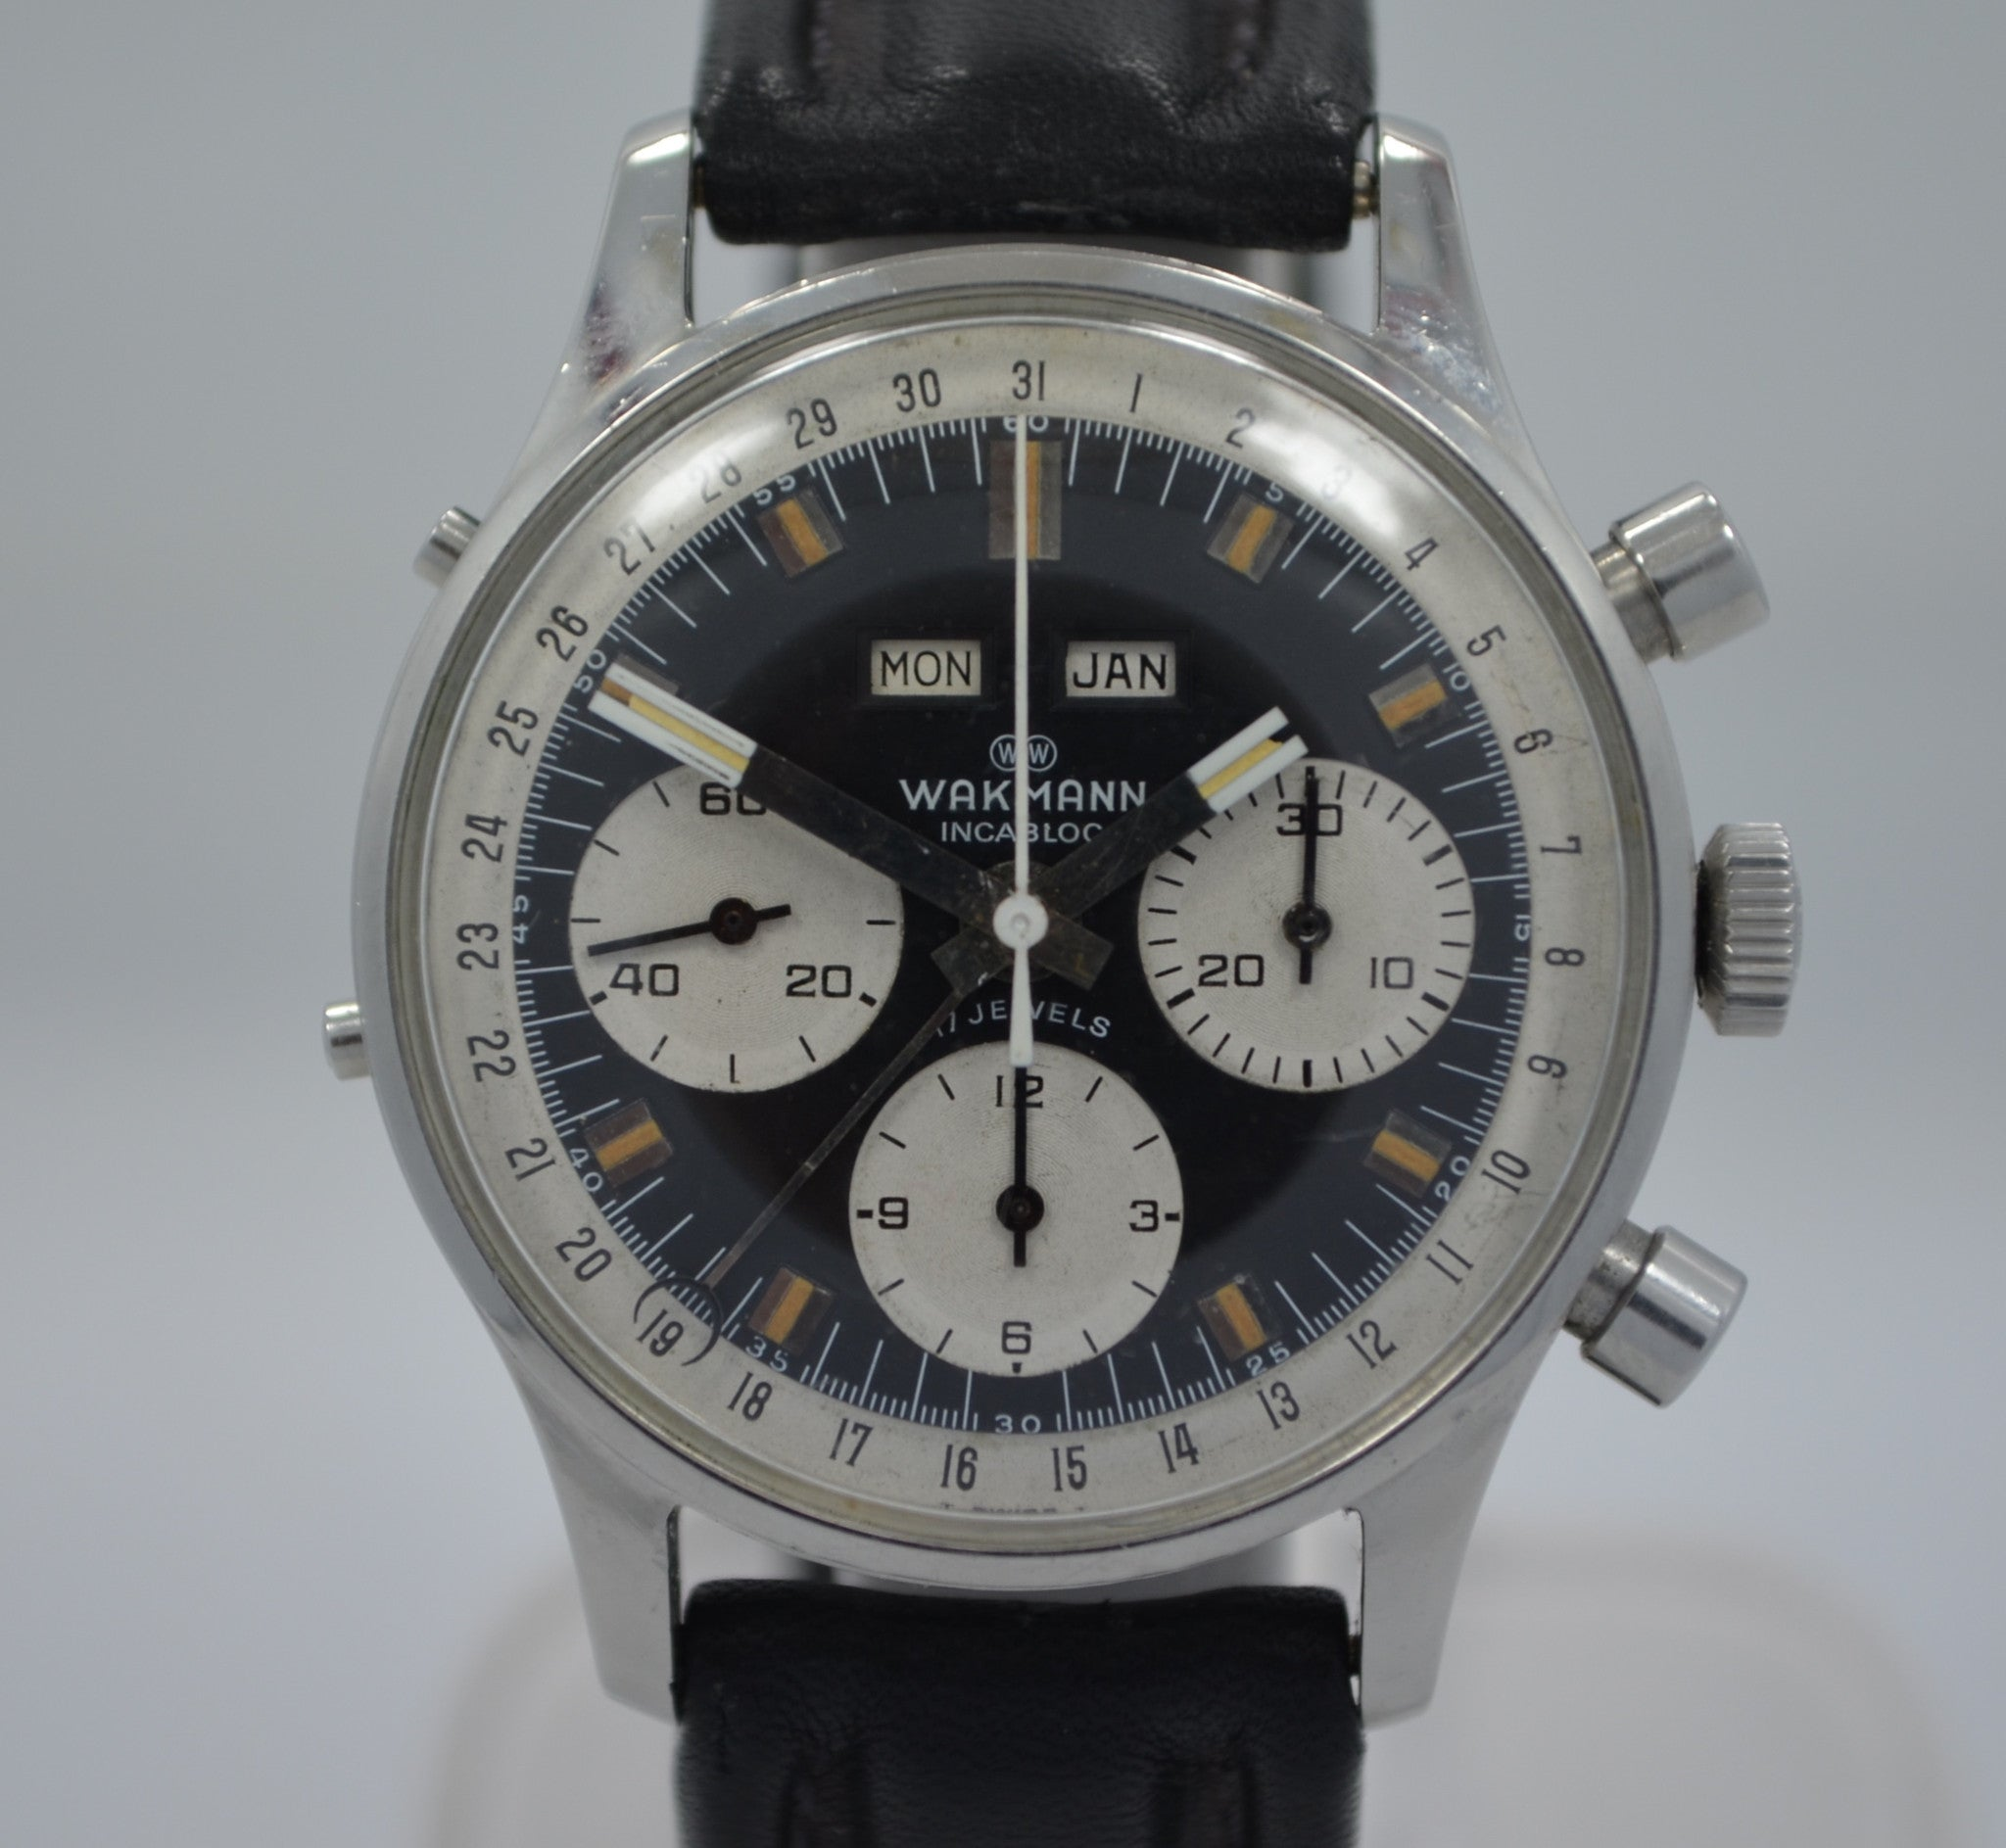 Vintage Wakmann Incabloc Chronograph Valjoux 72 1960's Steel Triple Date Watch - Hashtag Watch Company